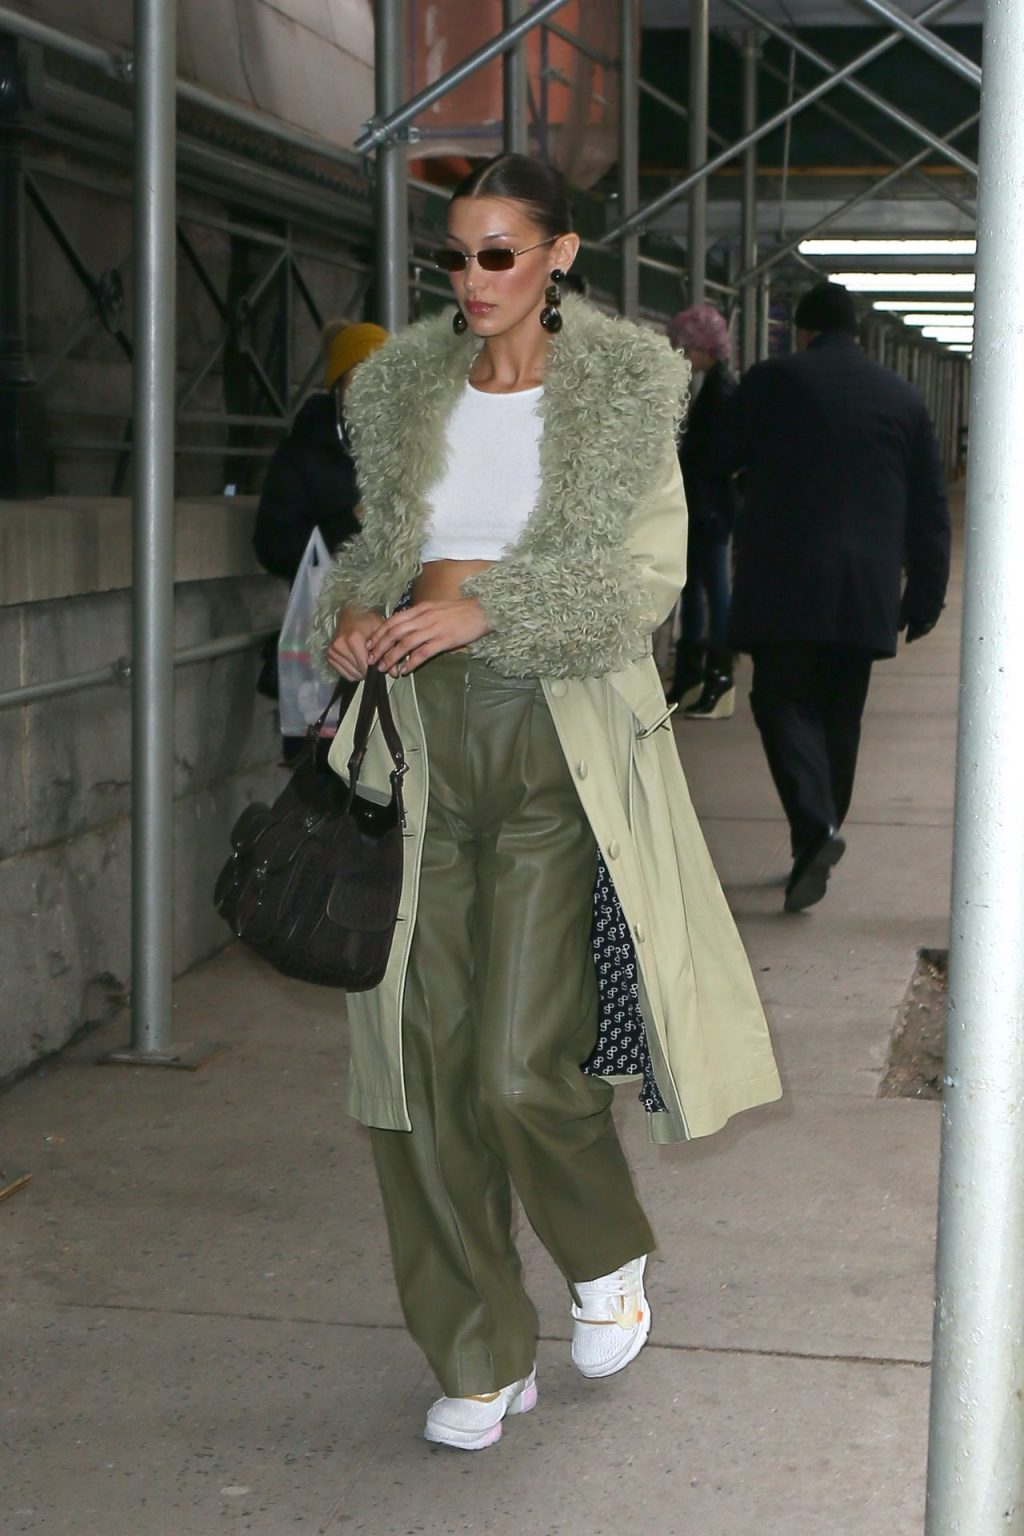 Bella Hadid See through The Fappening Blog 24 1024x1536 - Braless Bella Hadid Arrives at the Park Avenue Armory for the Marc Jacobs Fashion Show (59 Photos)